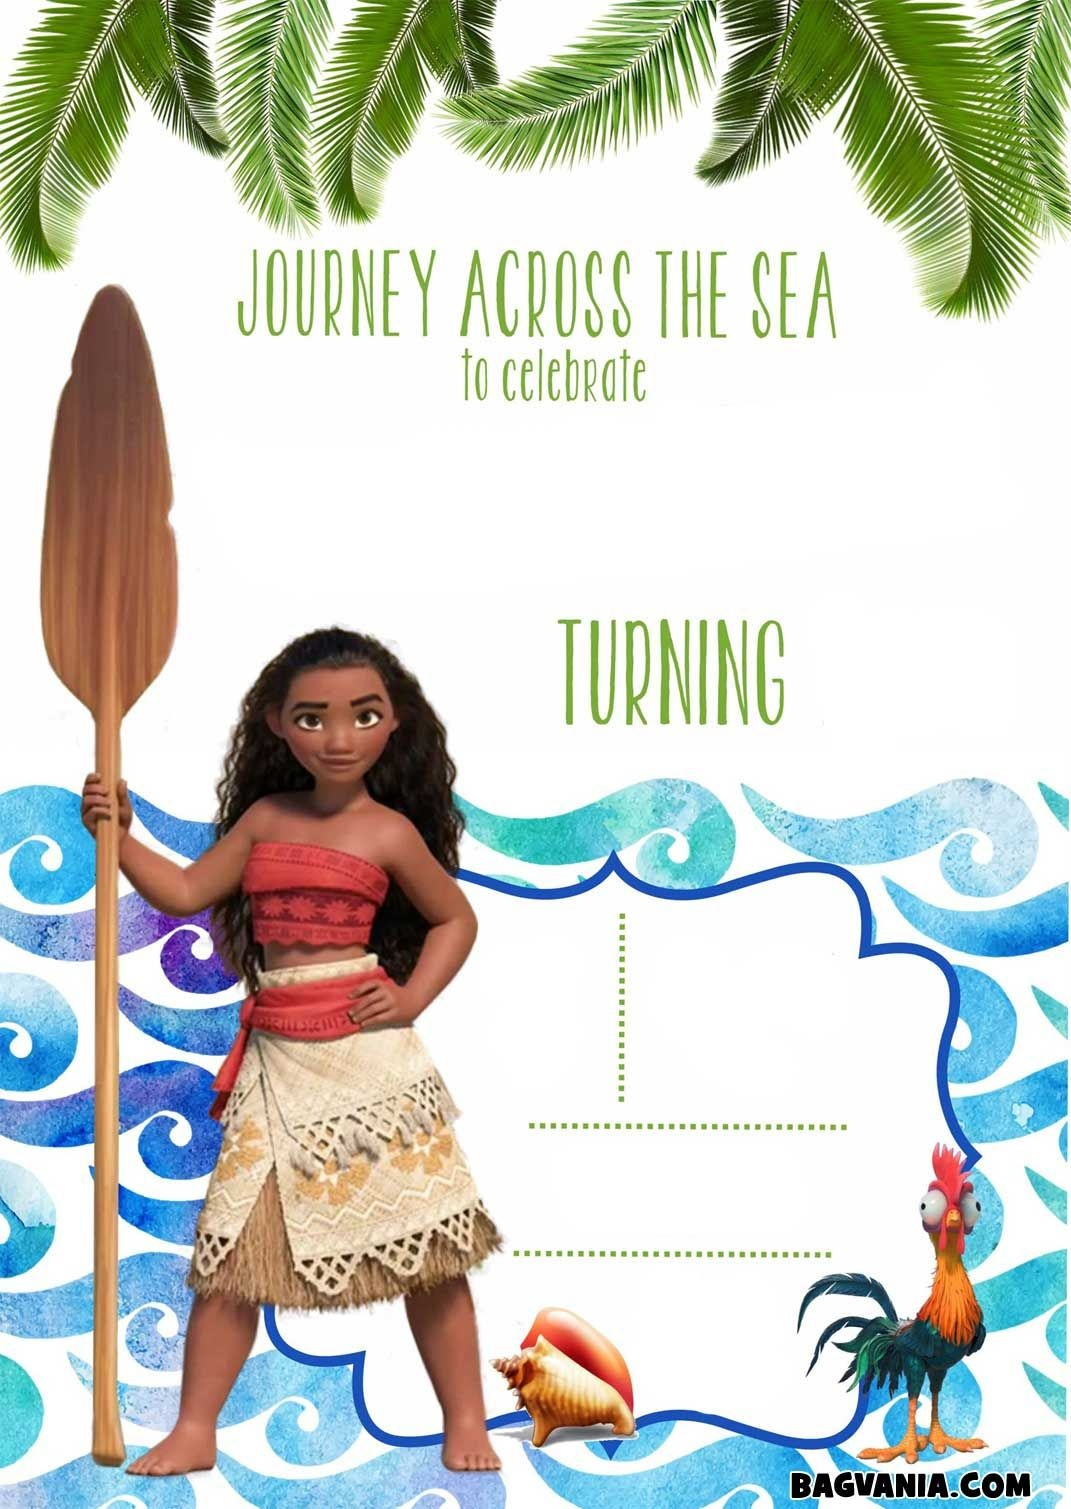 Pinrachel Hilker On Little Birthdays In 2019 | Free Printable - Free Printable Moana Invitations